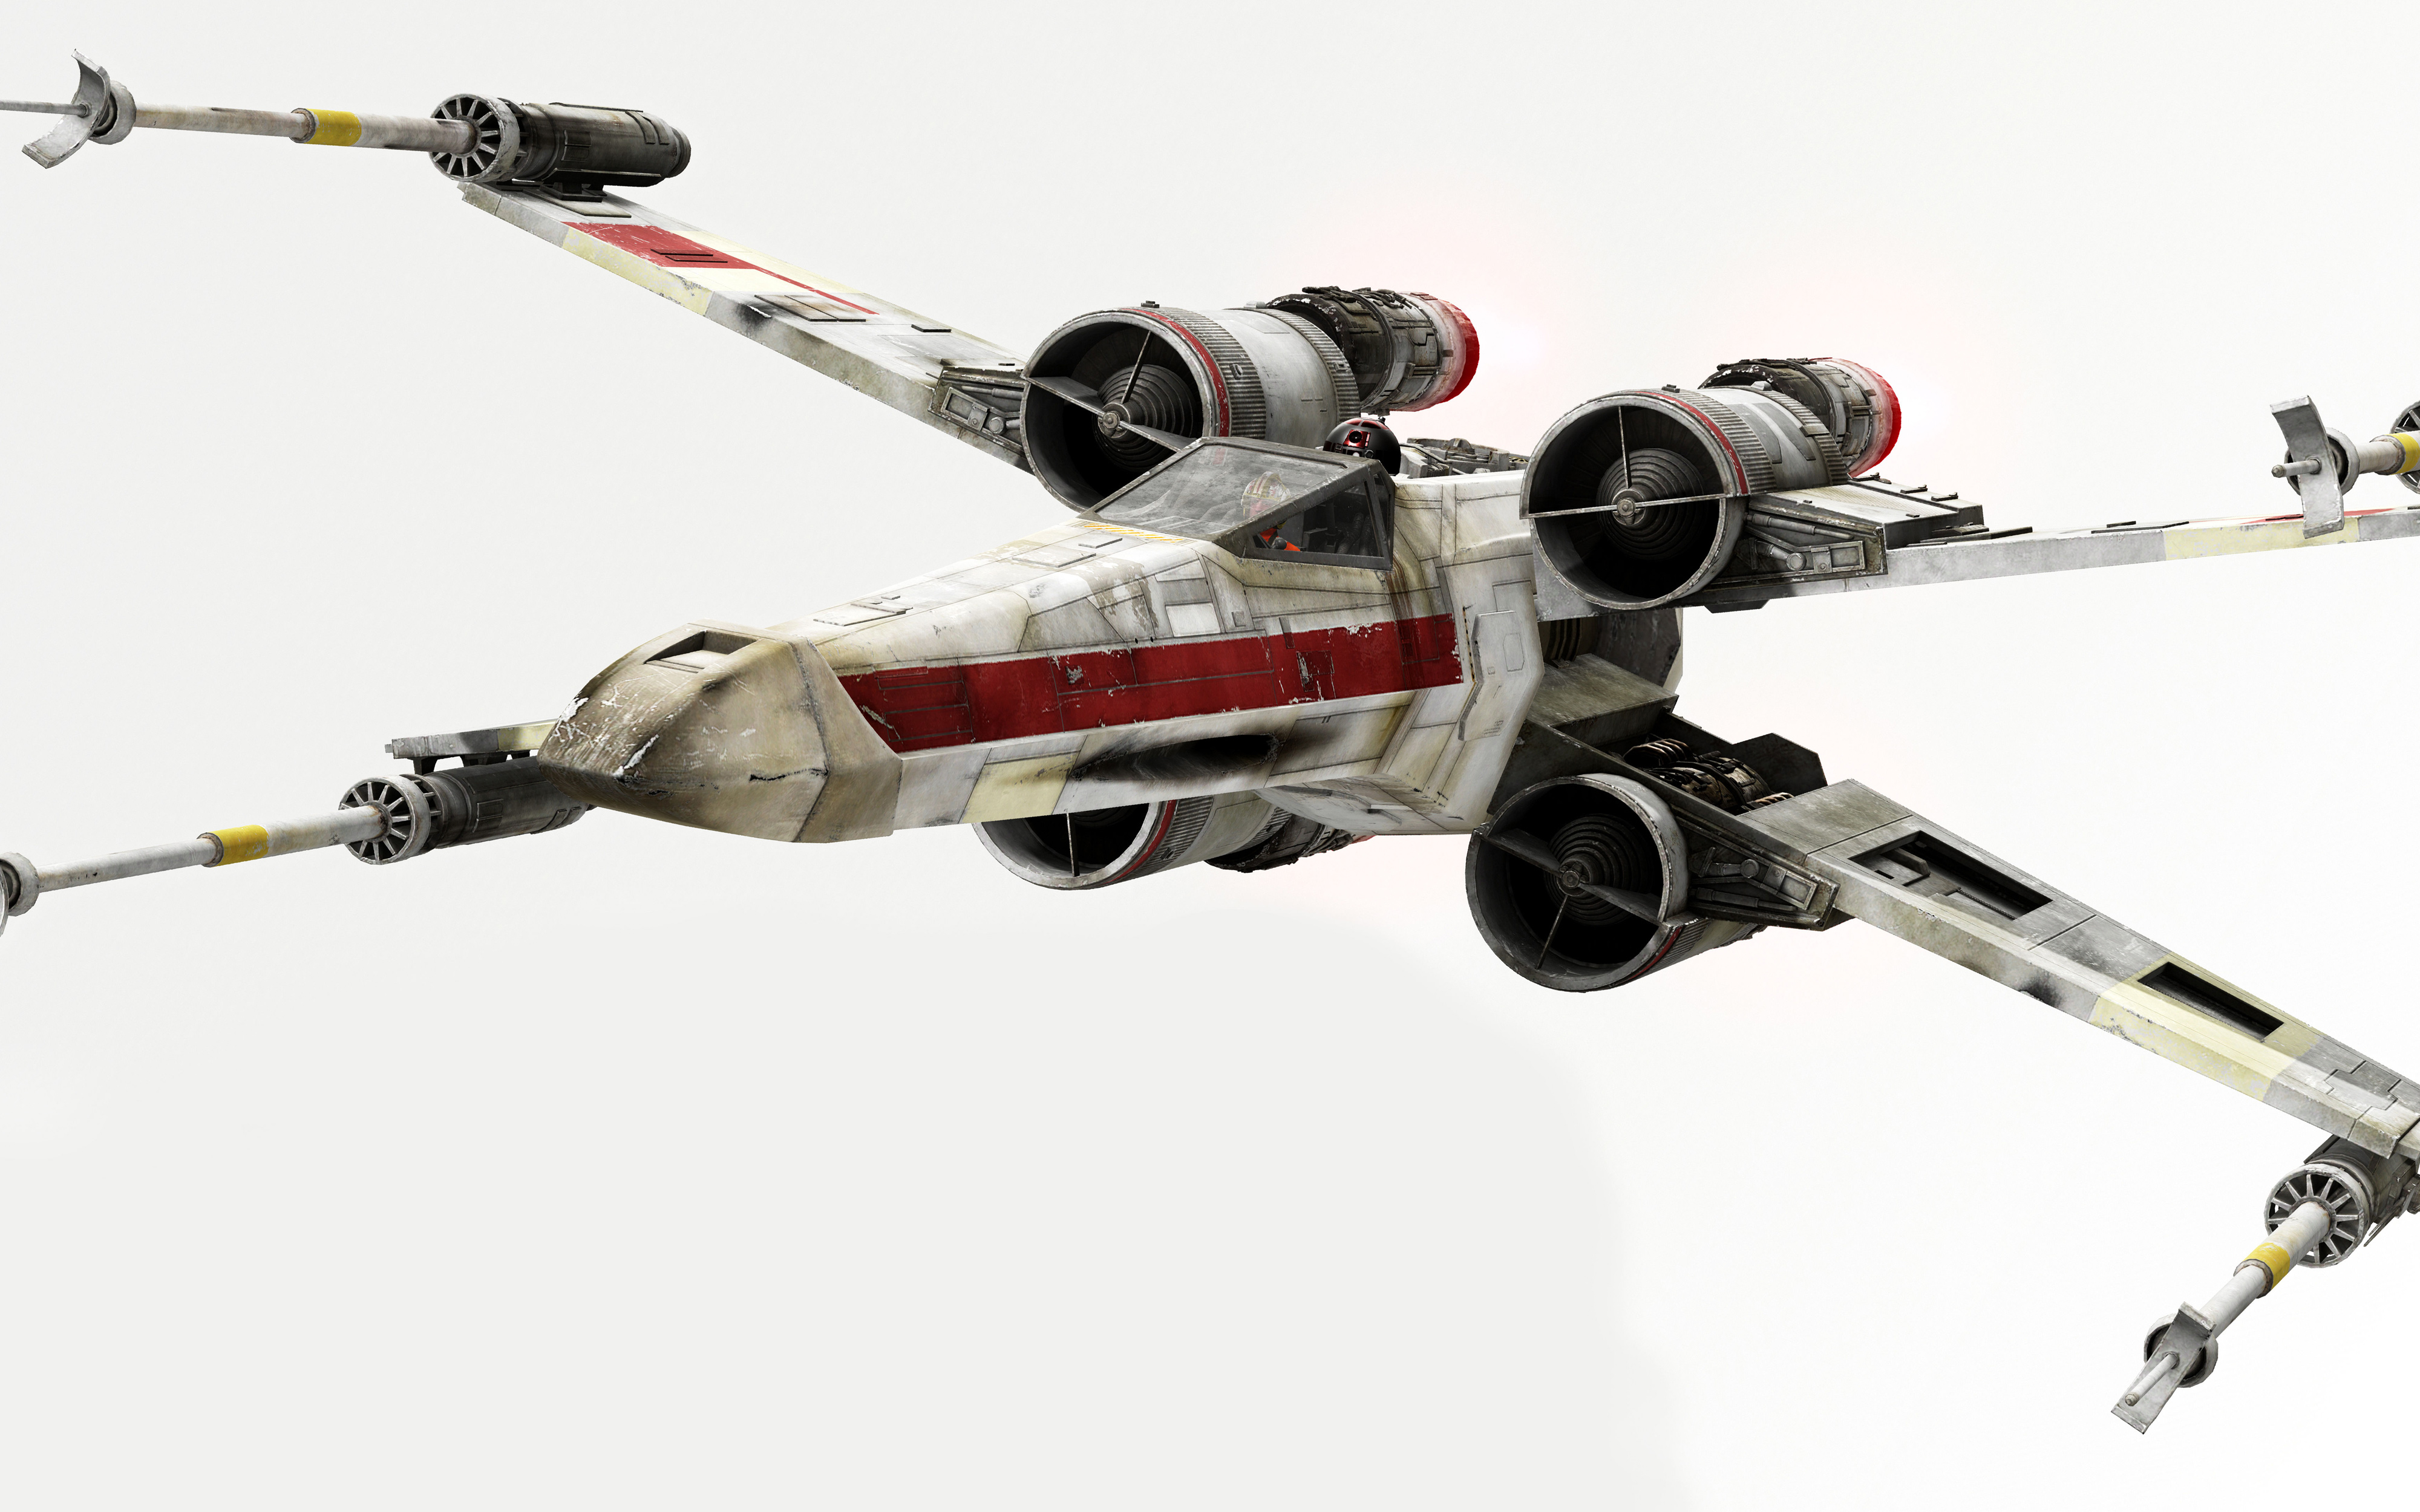 X Wing Starfighter 4K 8K7241013998 - X Wing Starfighter 4K 8K - Wing, Starfighter, Mil